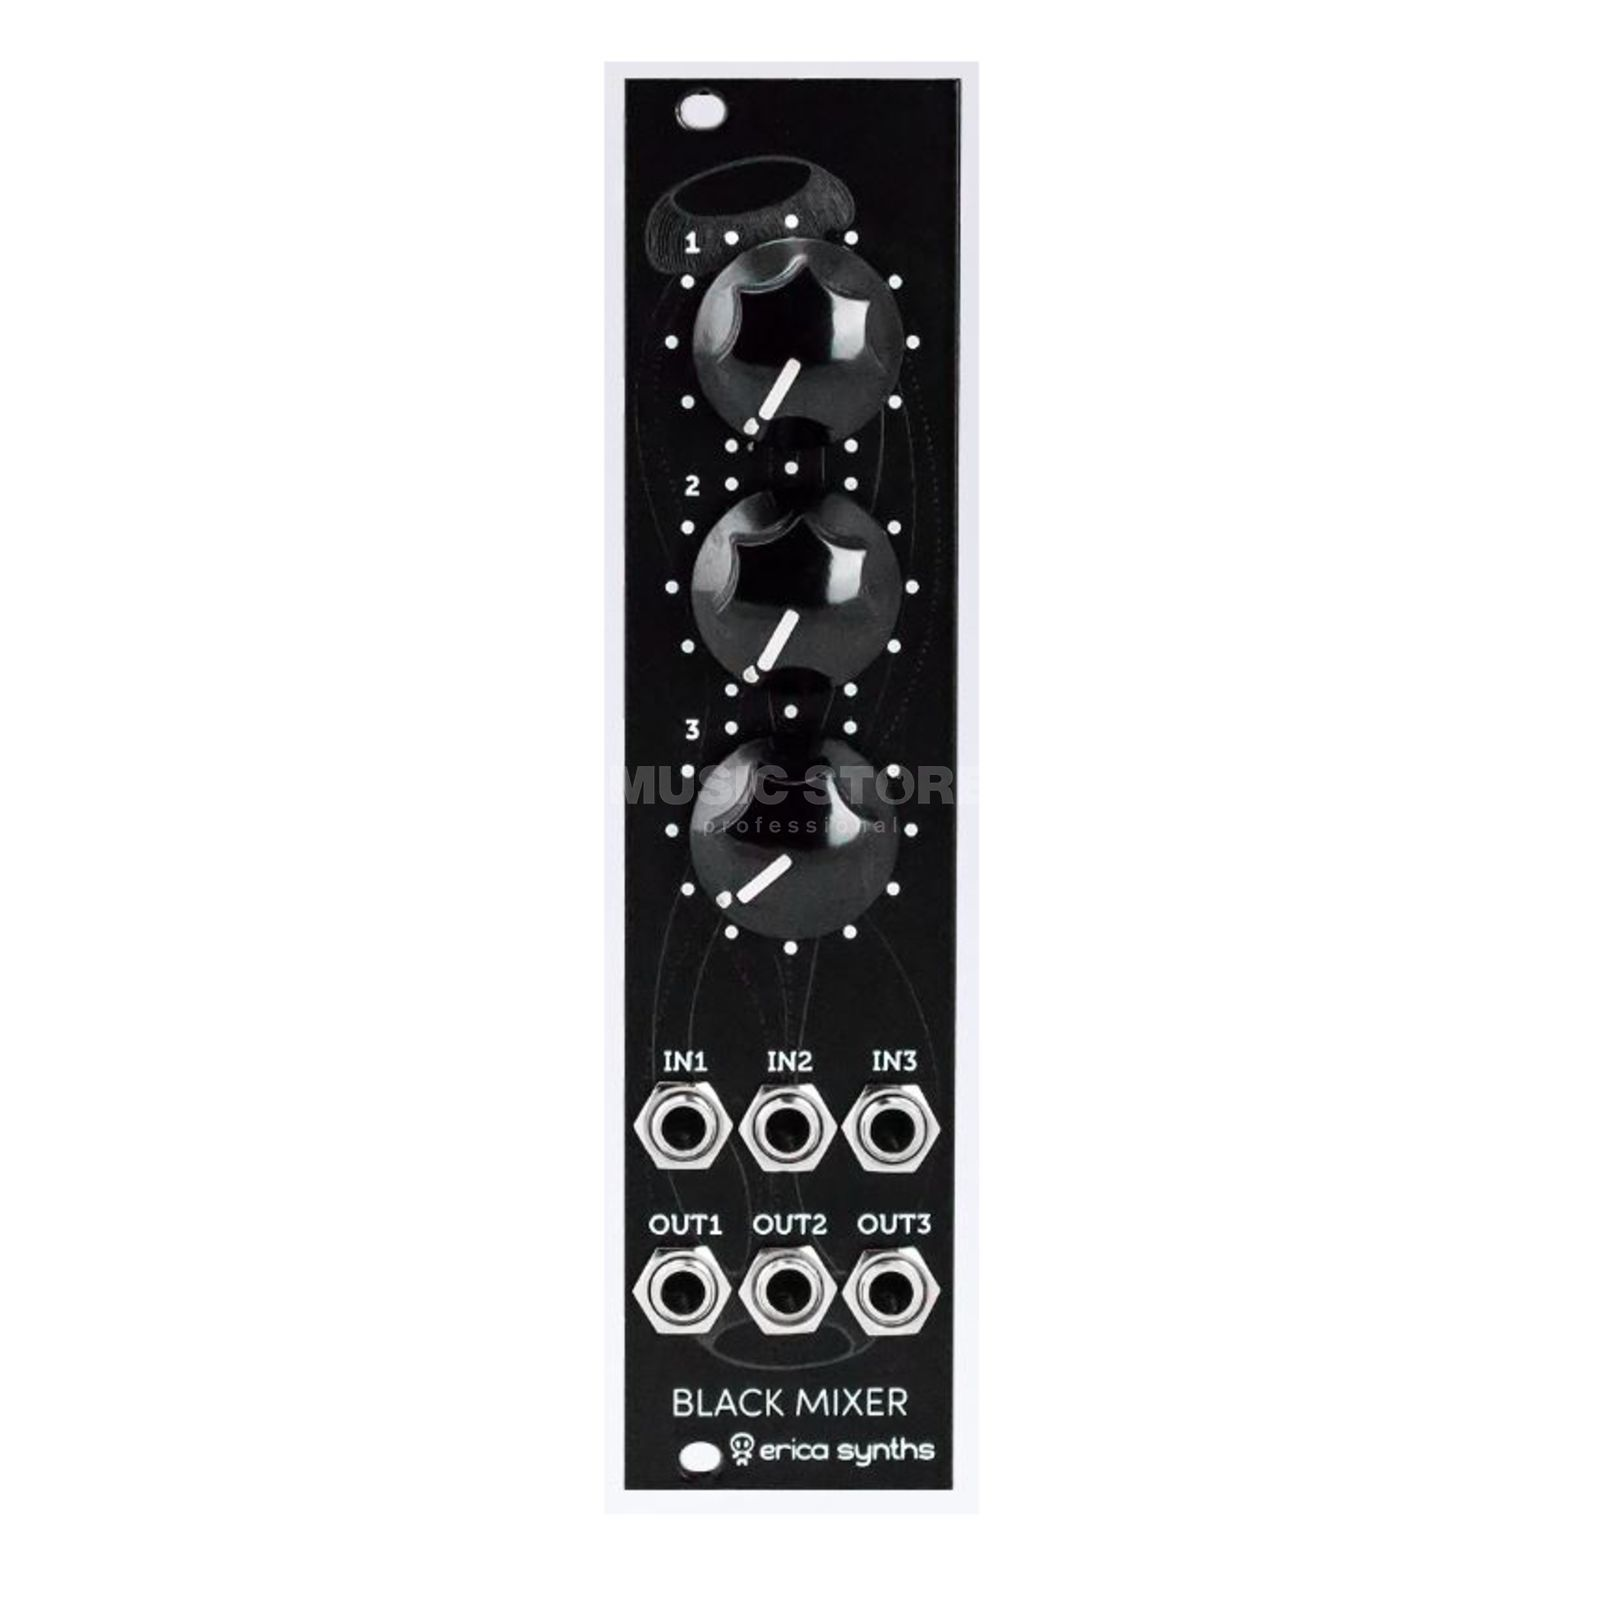 Erica Synths Black Mixer v2 Product Image